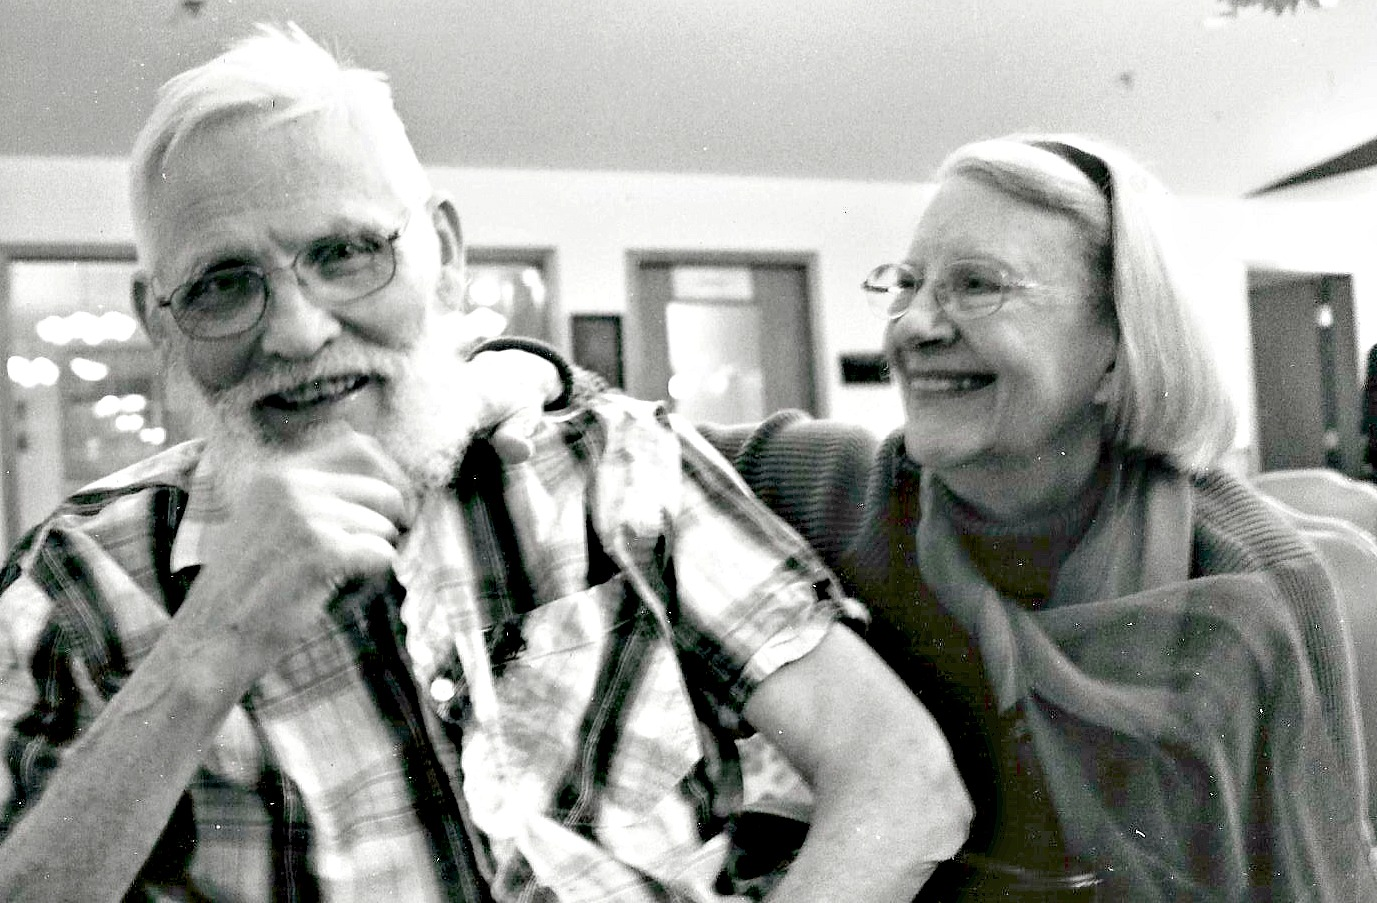 Two seniors smile in a black and white photo